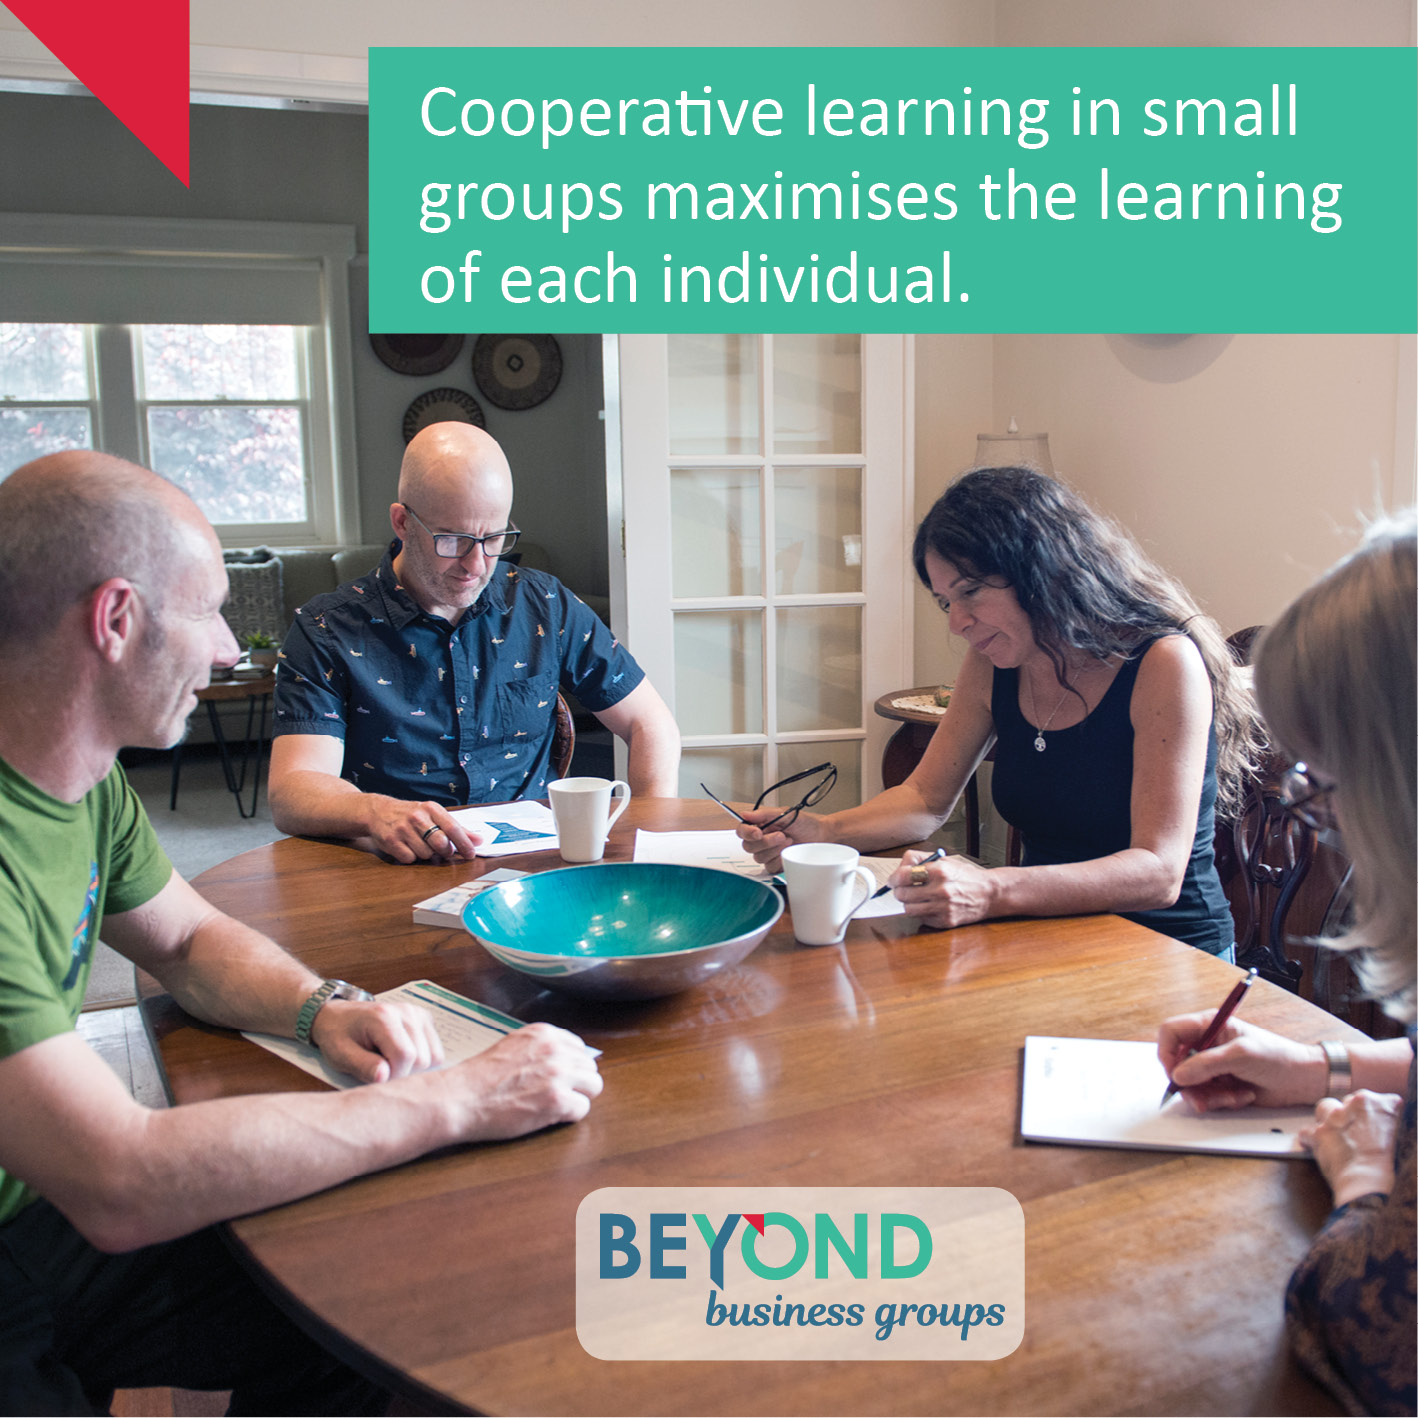 Cooperative-learning-Beyond-Business-Groups.jpg